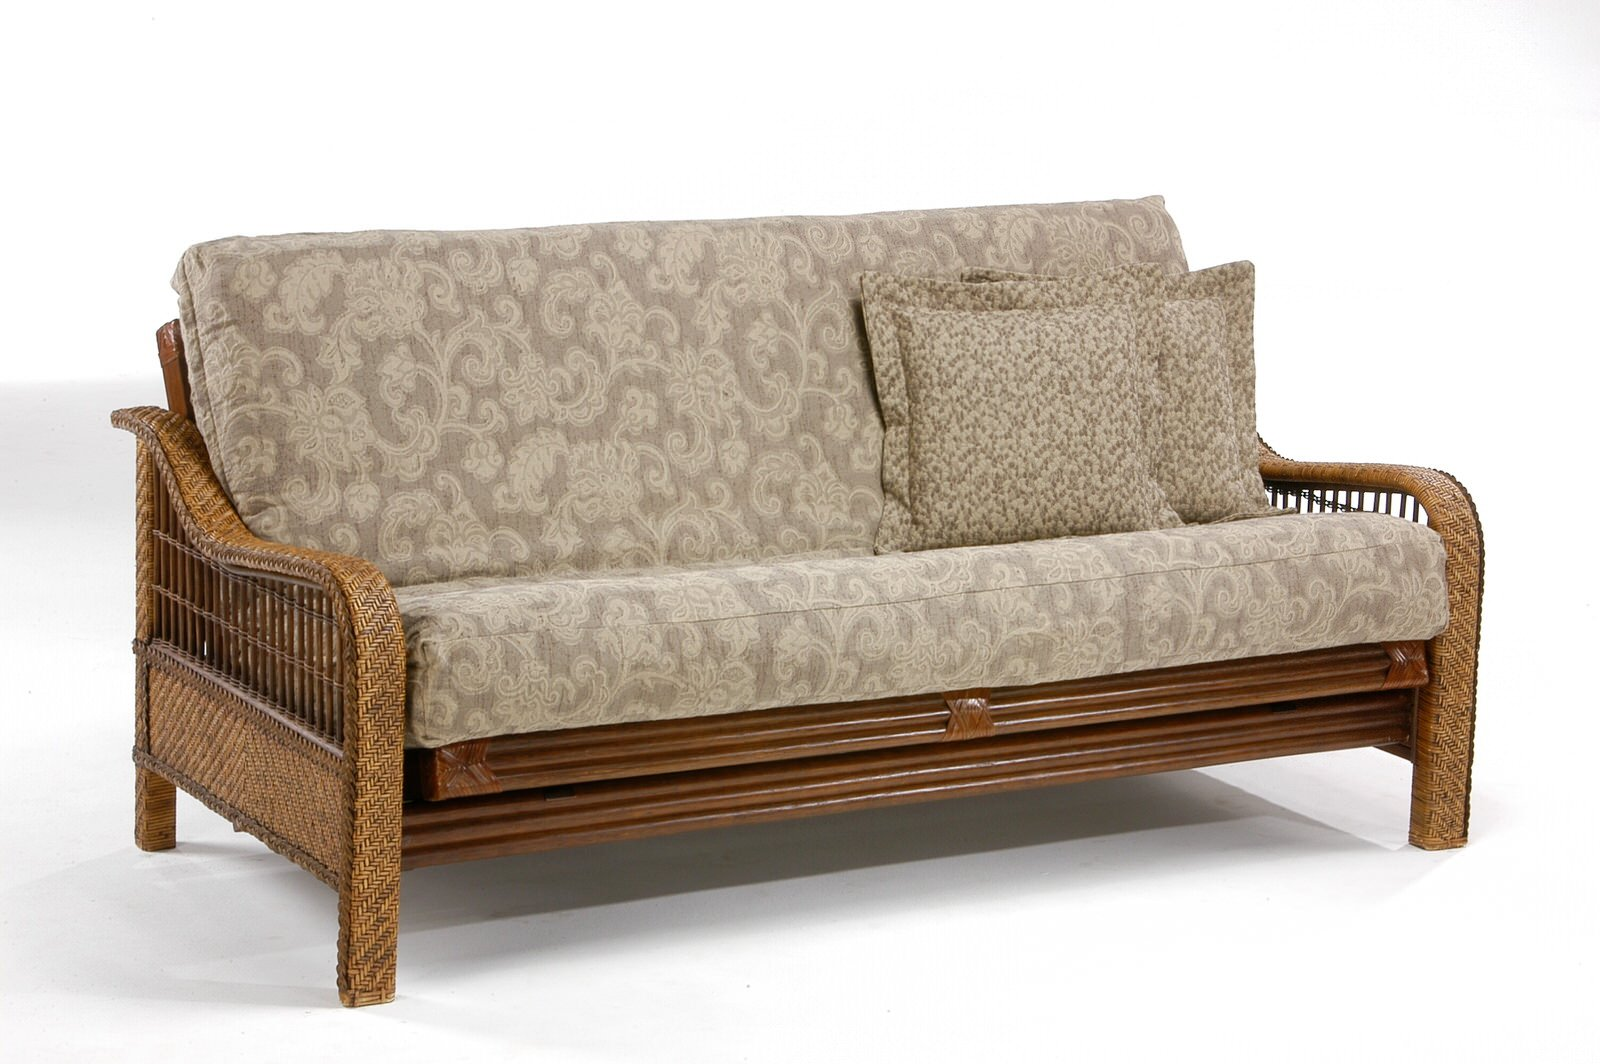 Medium image of orchid rattan futon frame by nightu0026day furniture